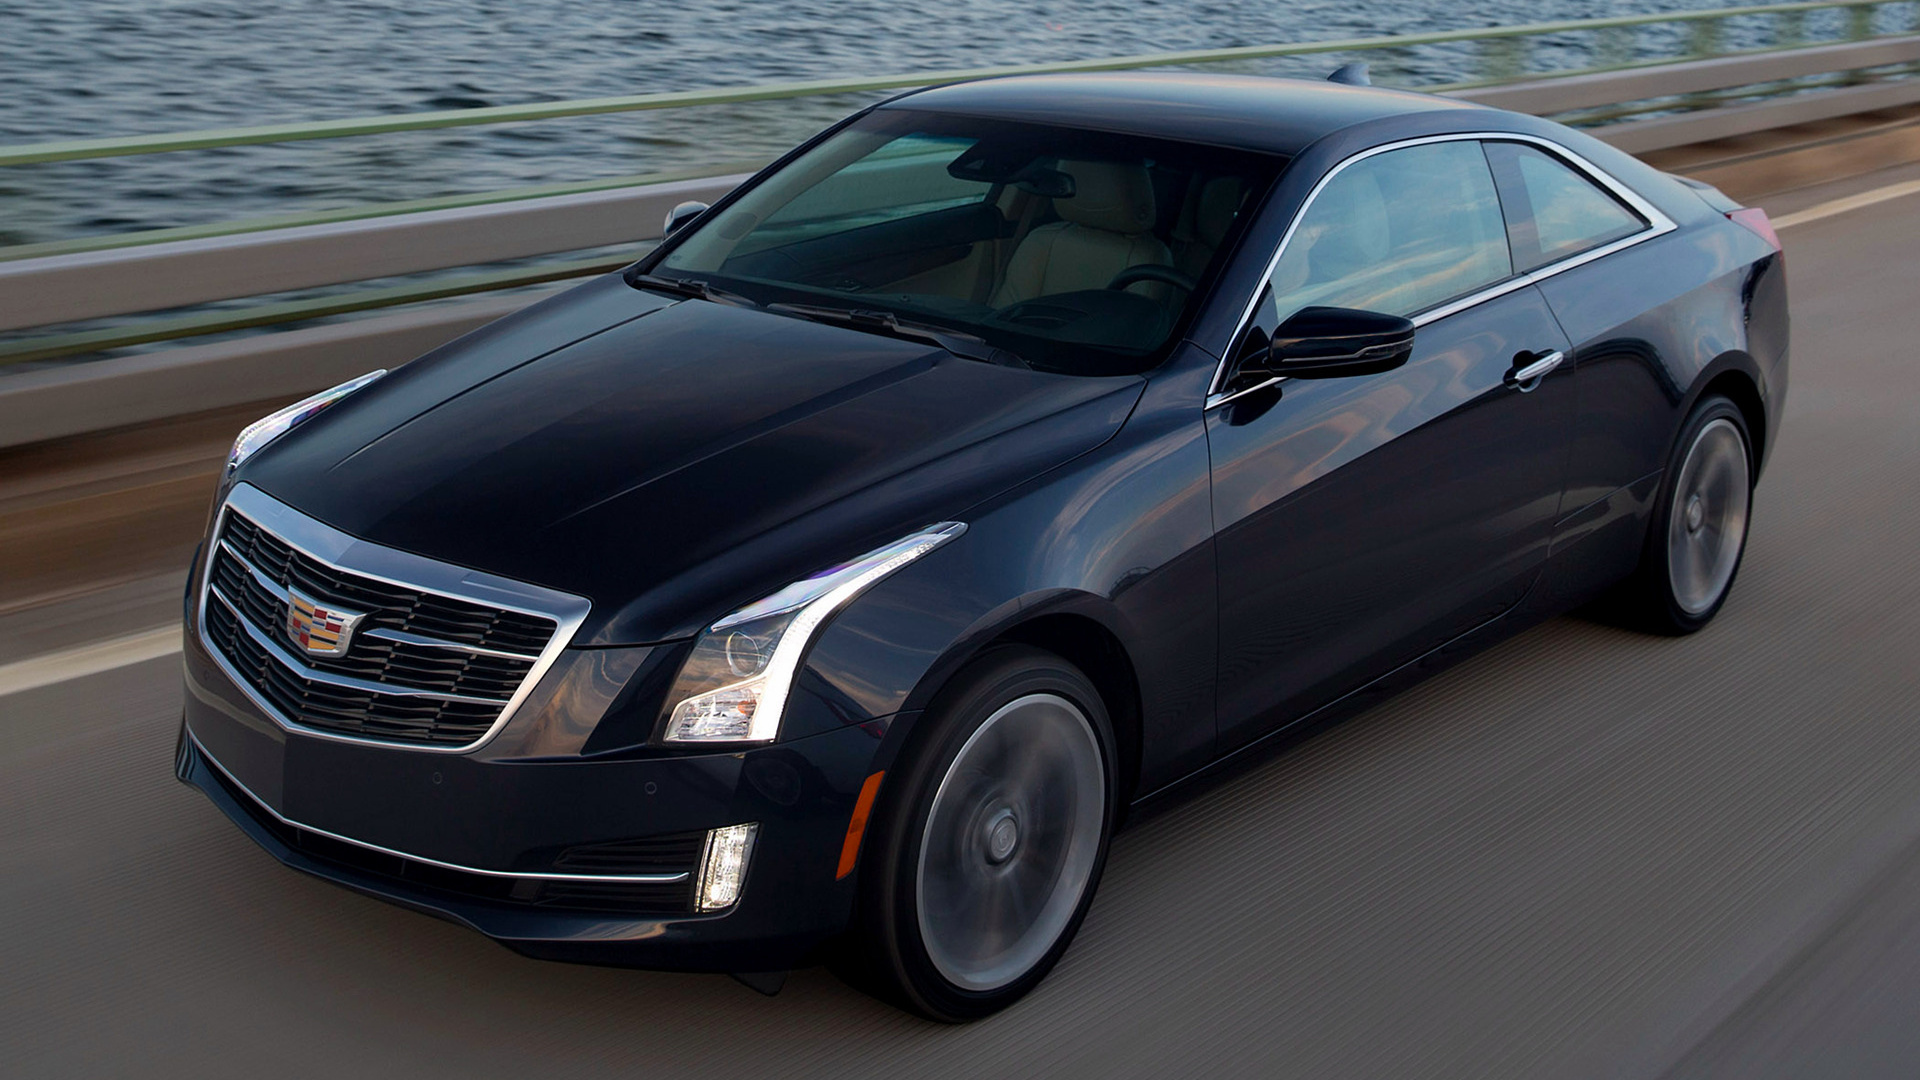 Cadillac ATS Coupe (2015) Wallpapers and HD Images - Car Pixel